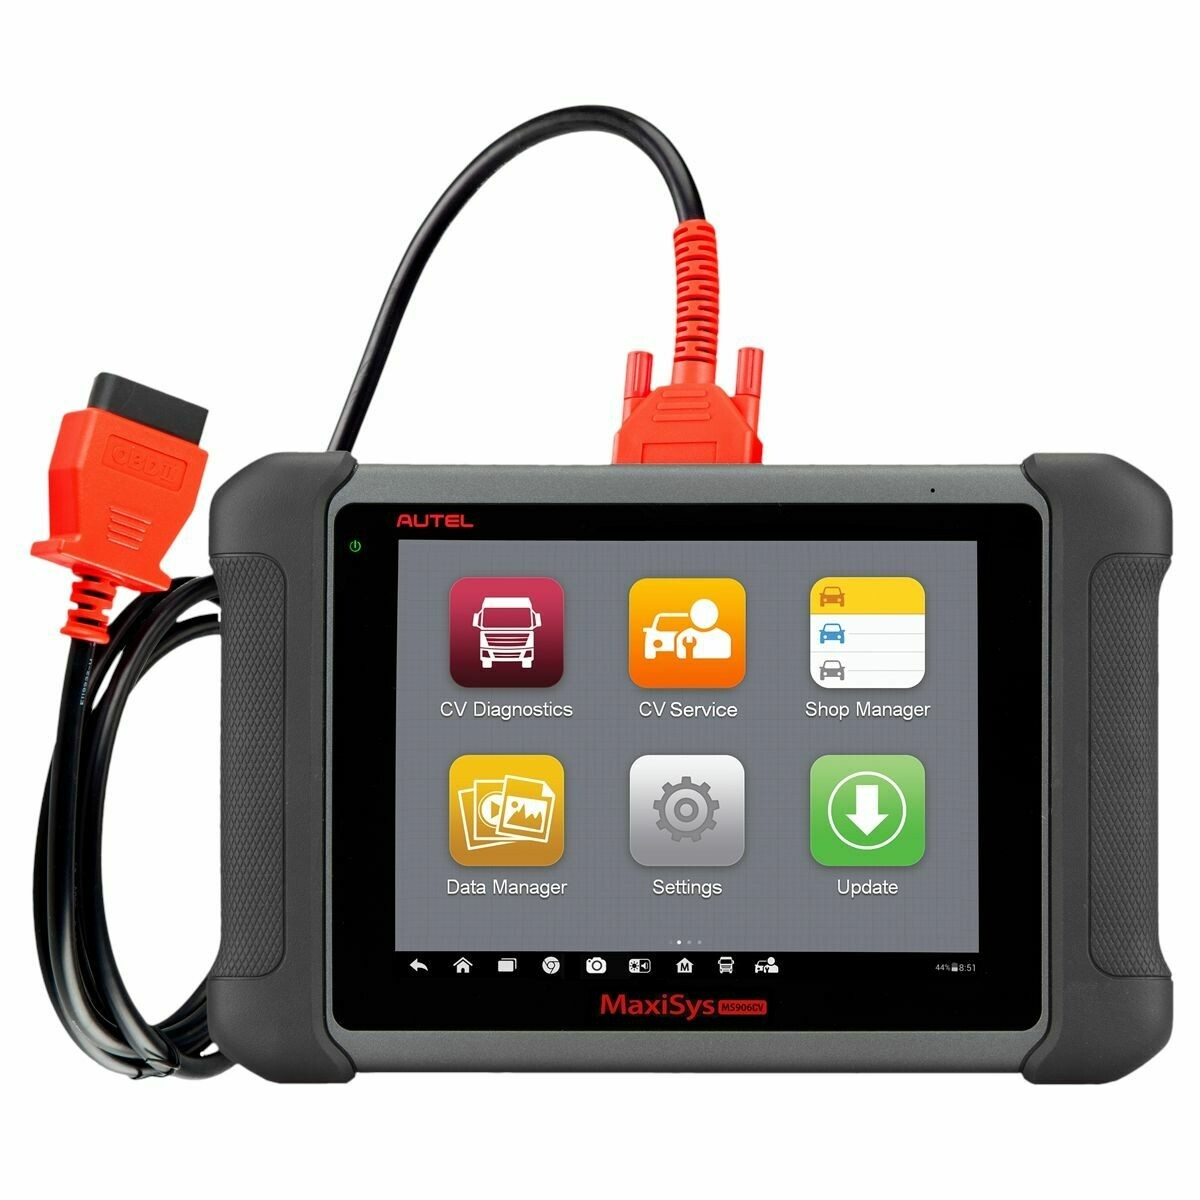 AUTEL Android Diagnostic Tablet for Commercial Vehicles